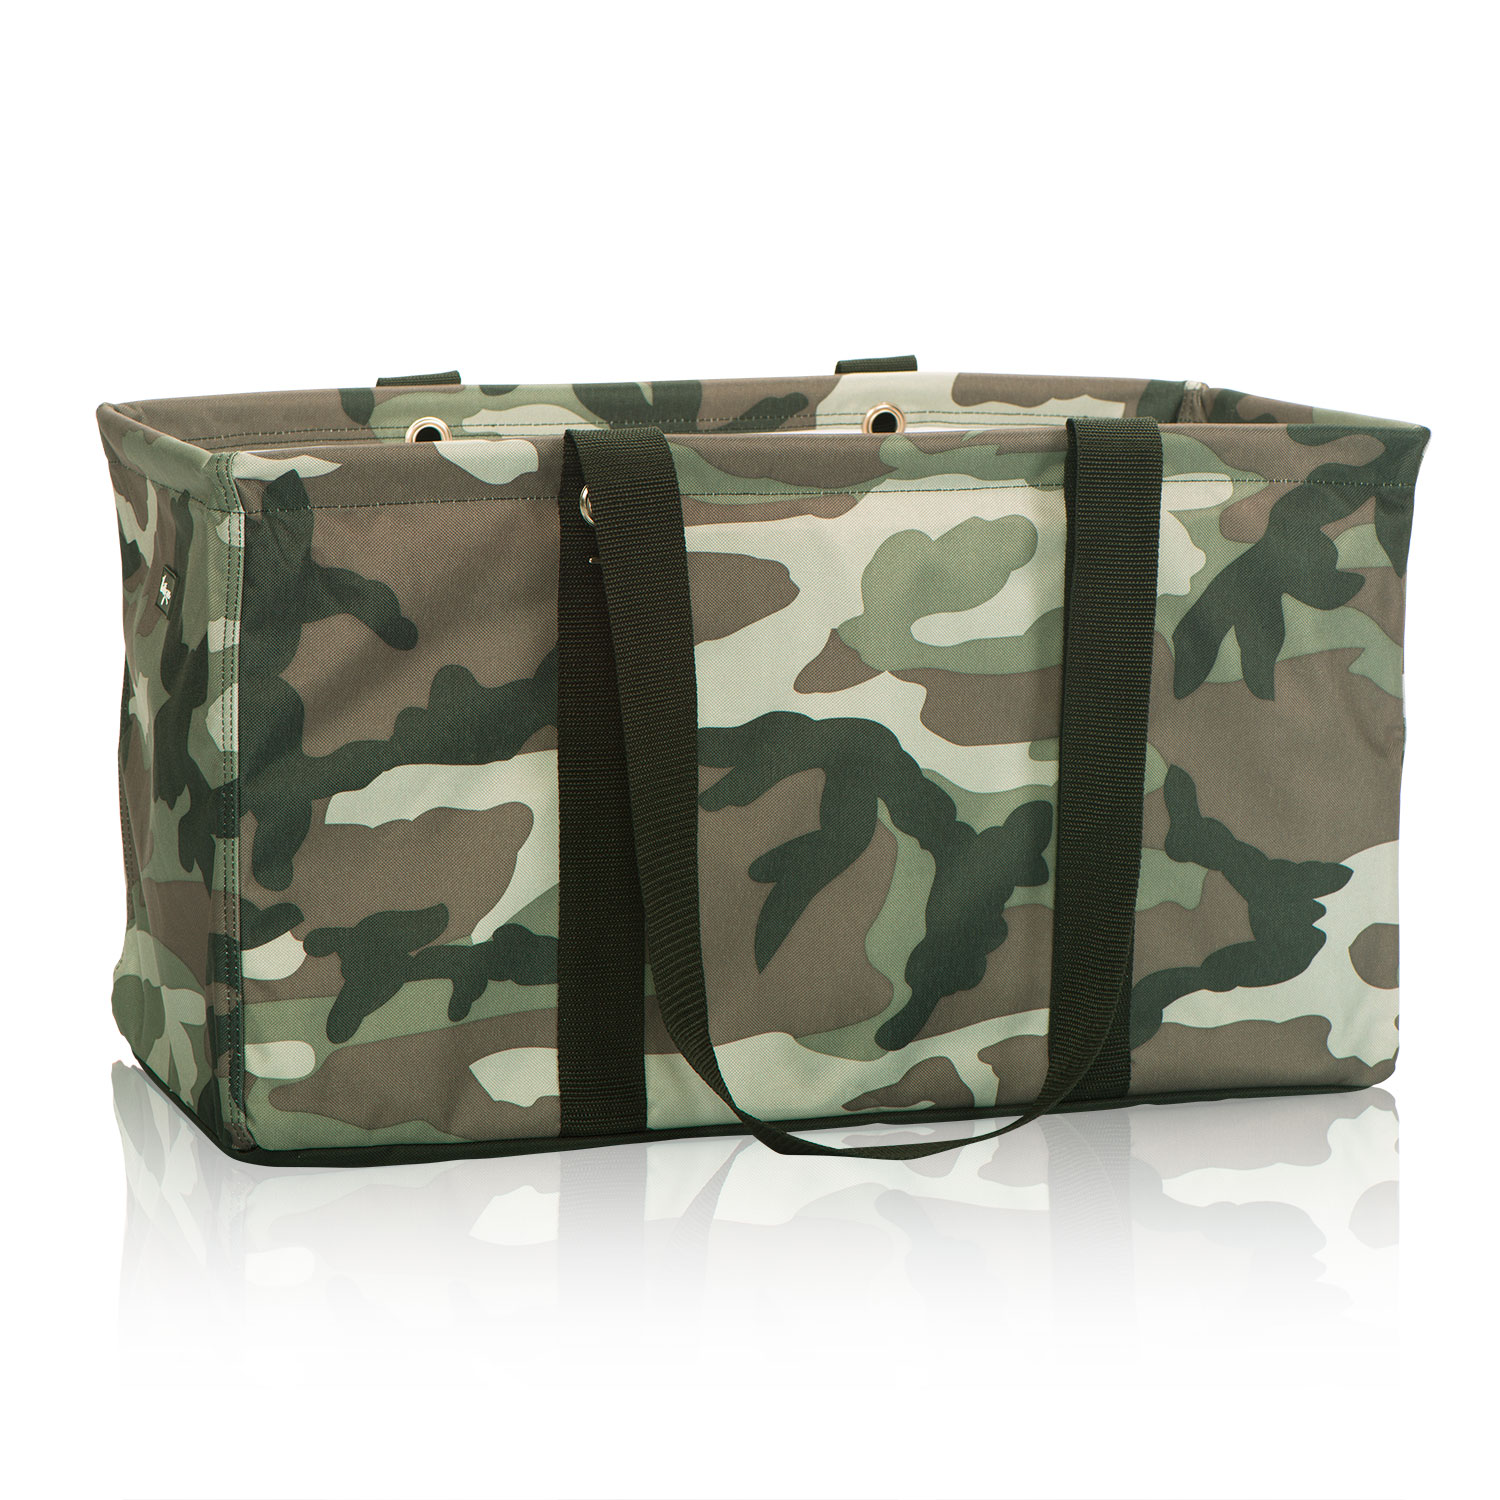 Camo large utility tote thirty one gifts for Cama quinsay